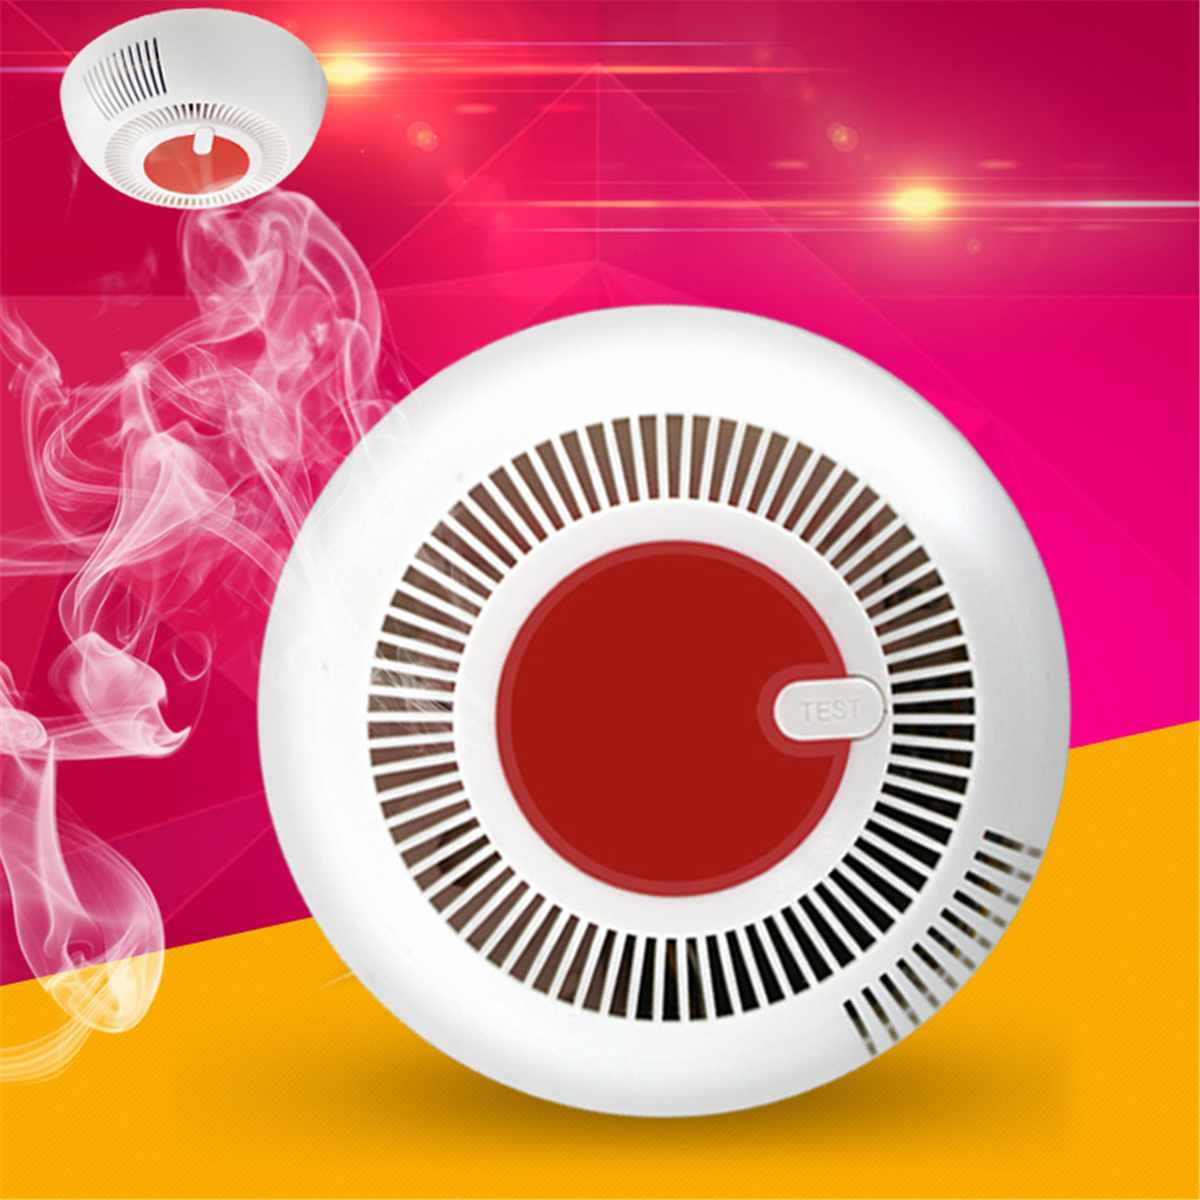 White Wireless Smoke Detector Home Security Alarm Sensor System Infrared Photoelectric Sensor Protection Battery Operated